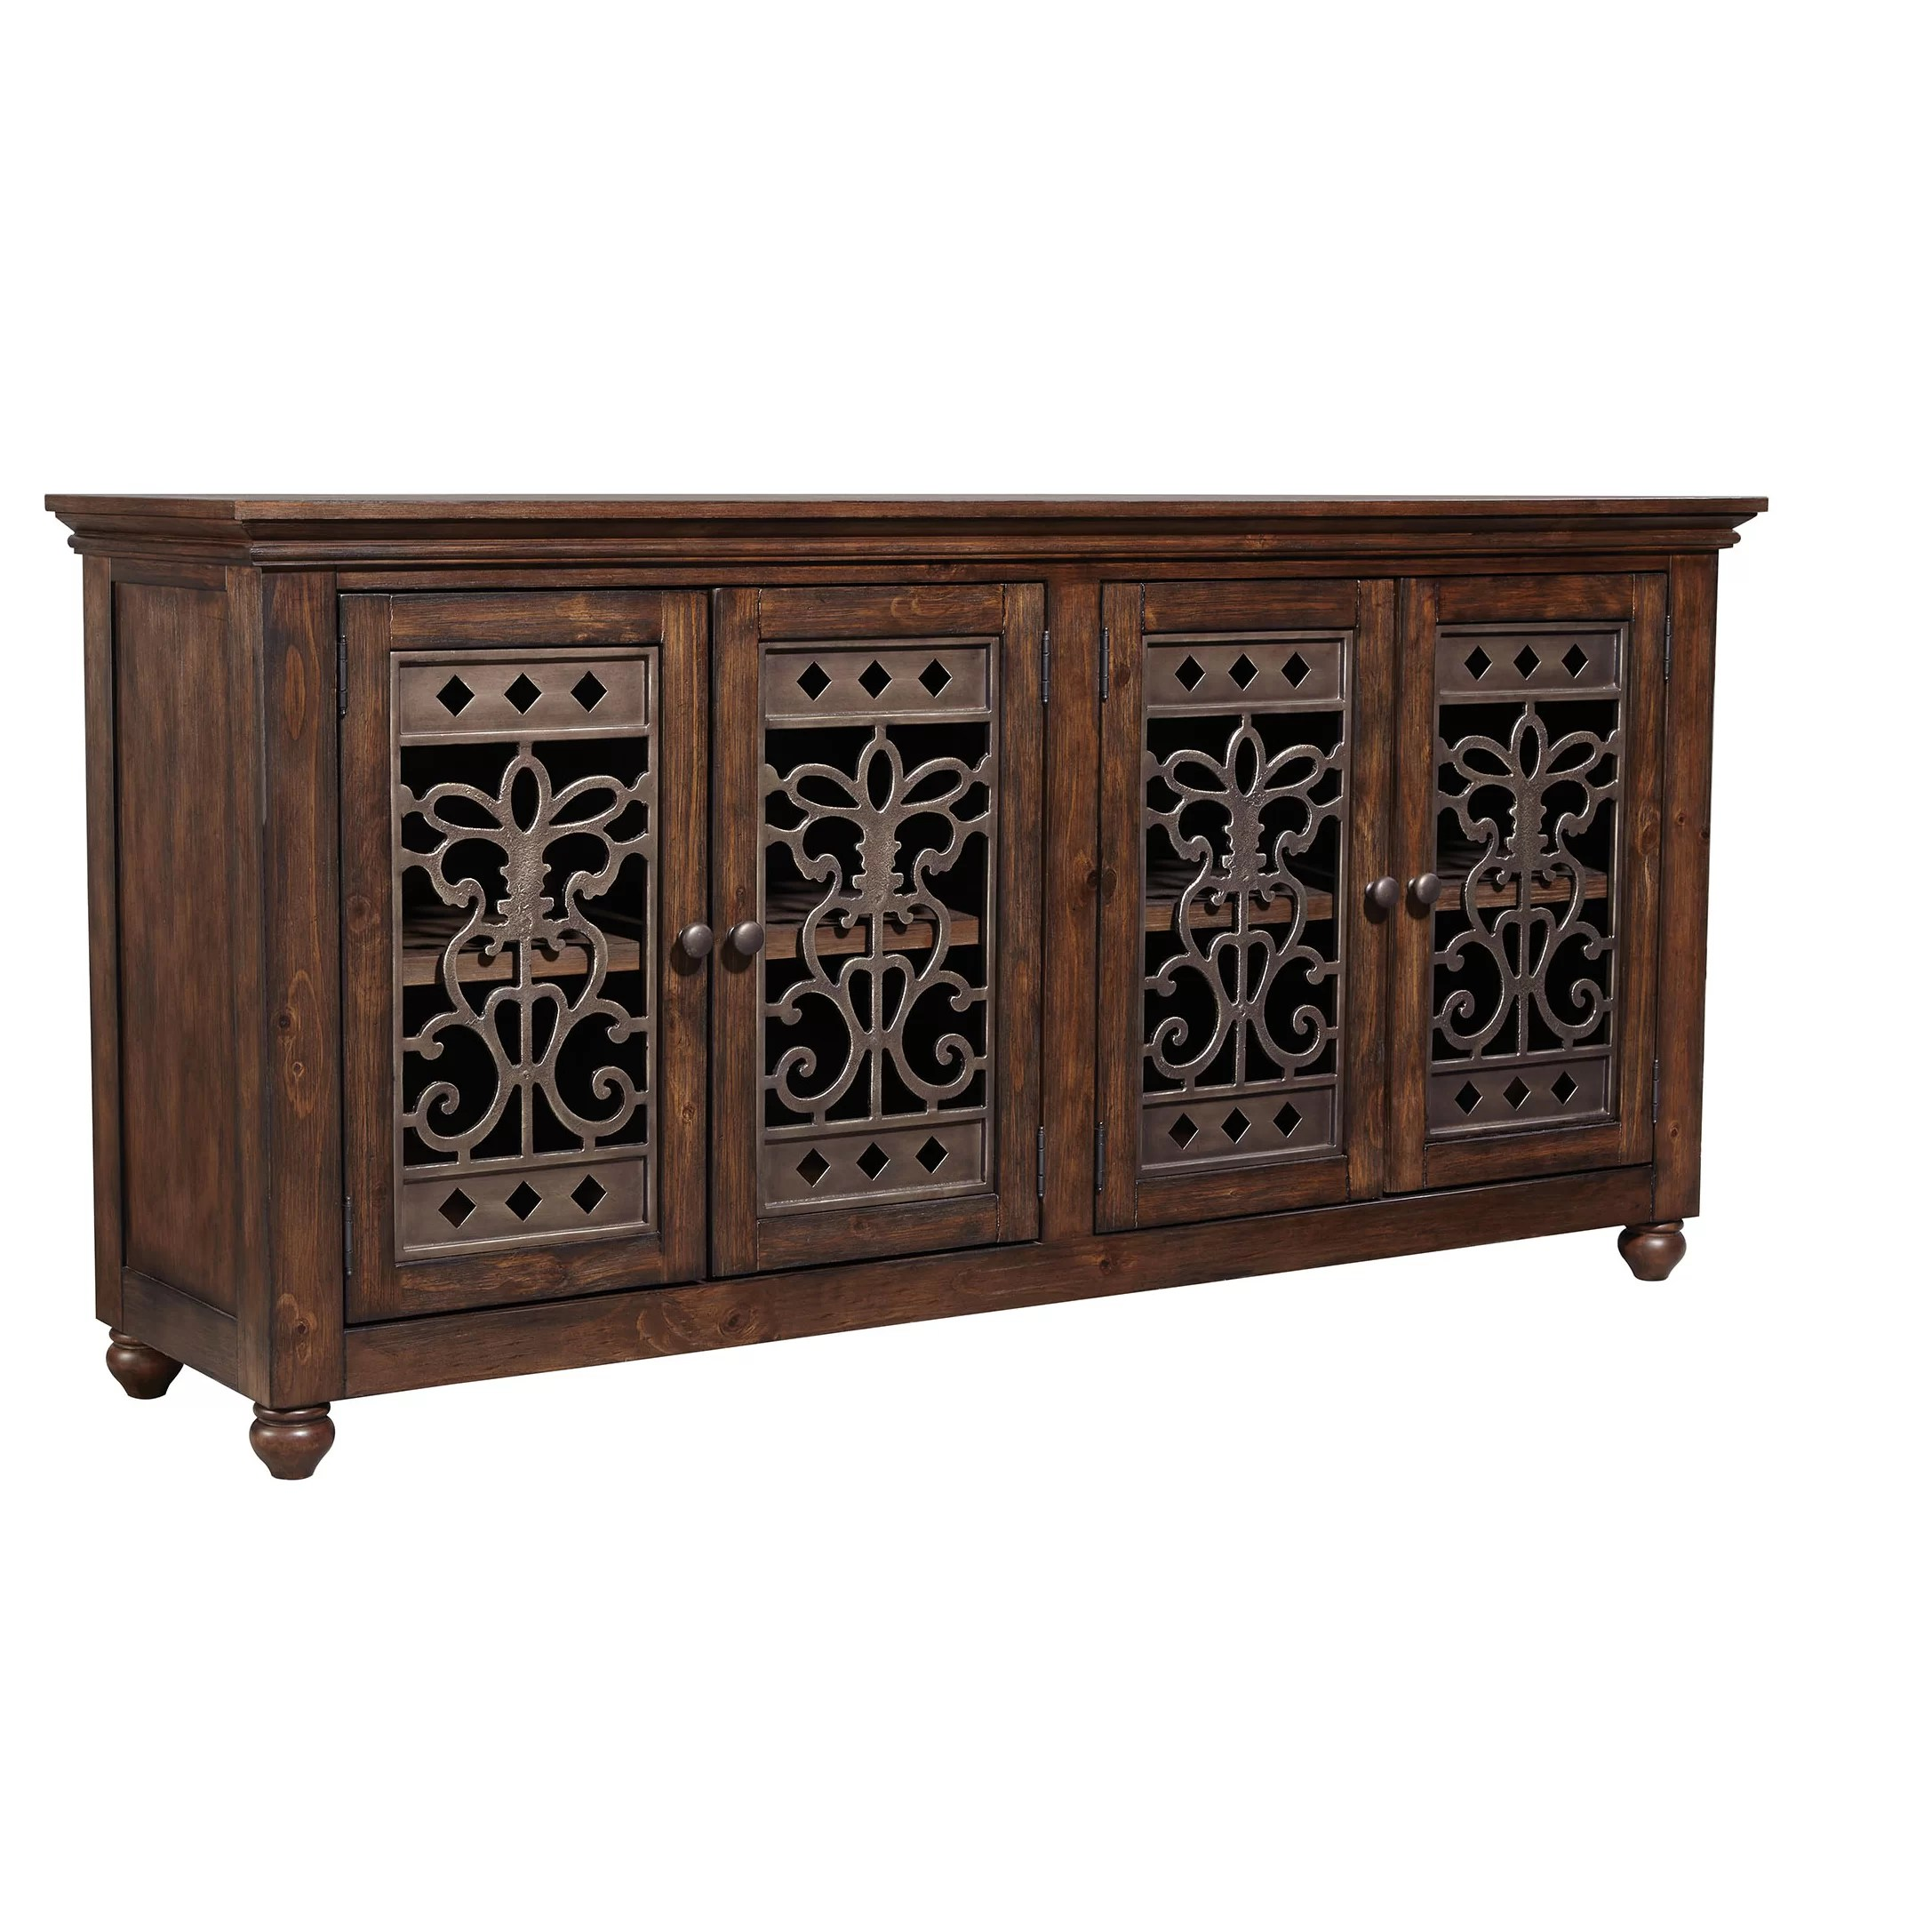 Flur Sideboard Fleur De Lis Living Melinda Sideboard & Reviews | Wayfair.ca